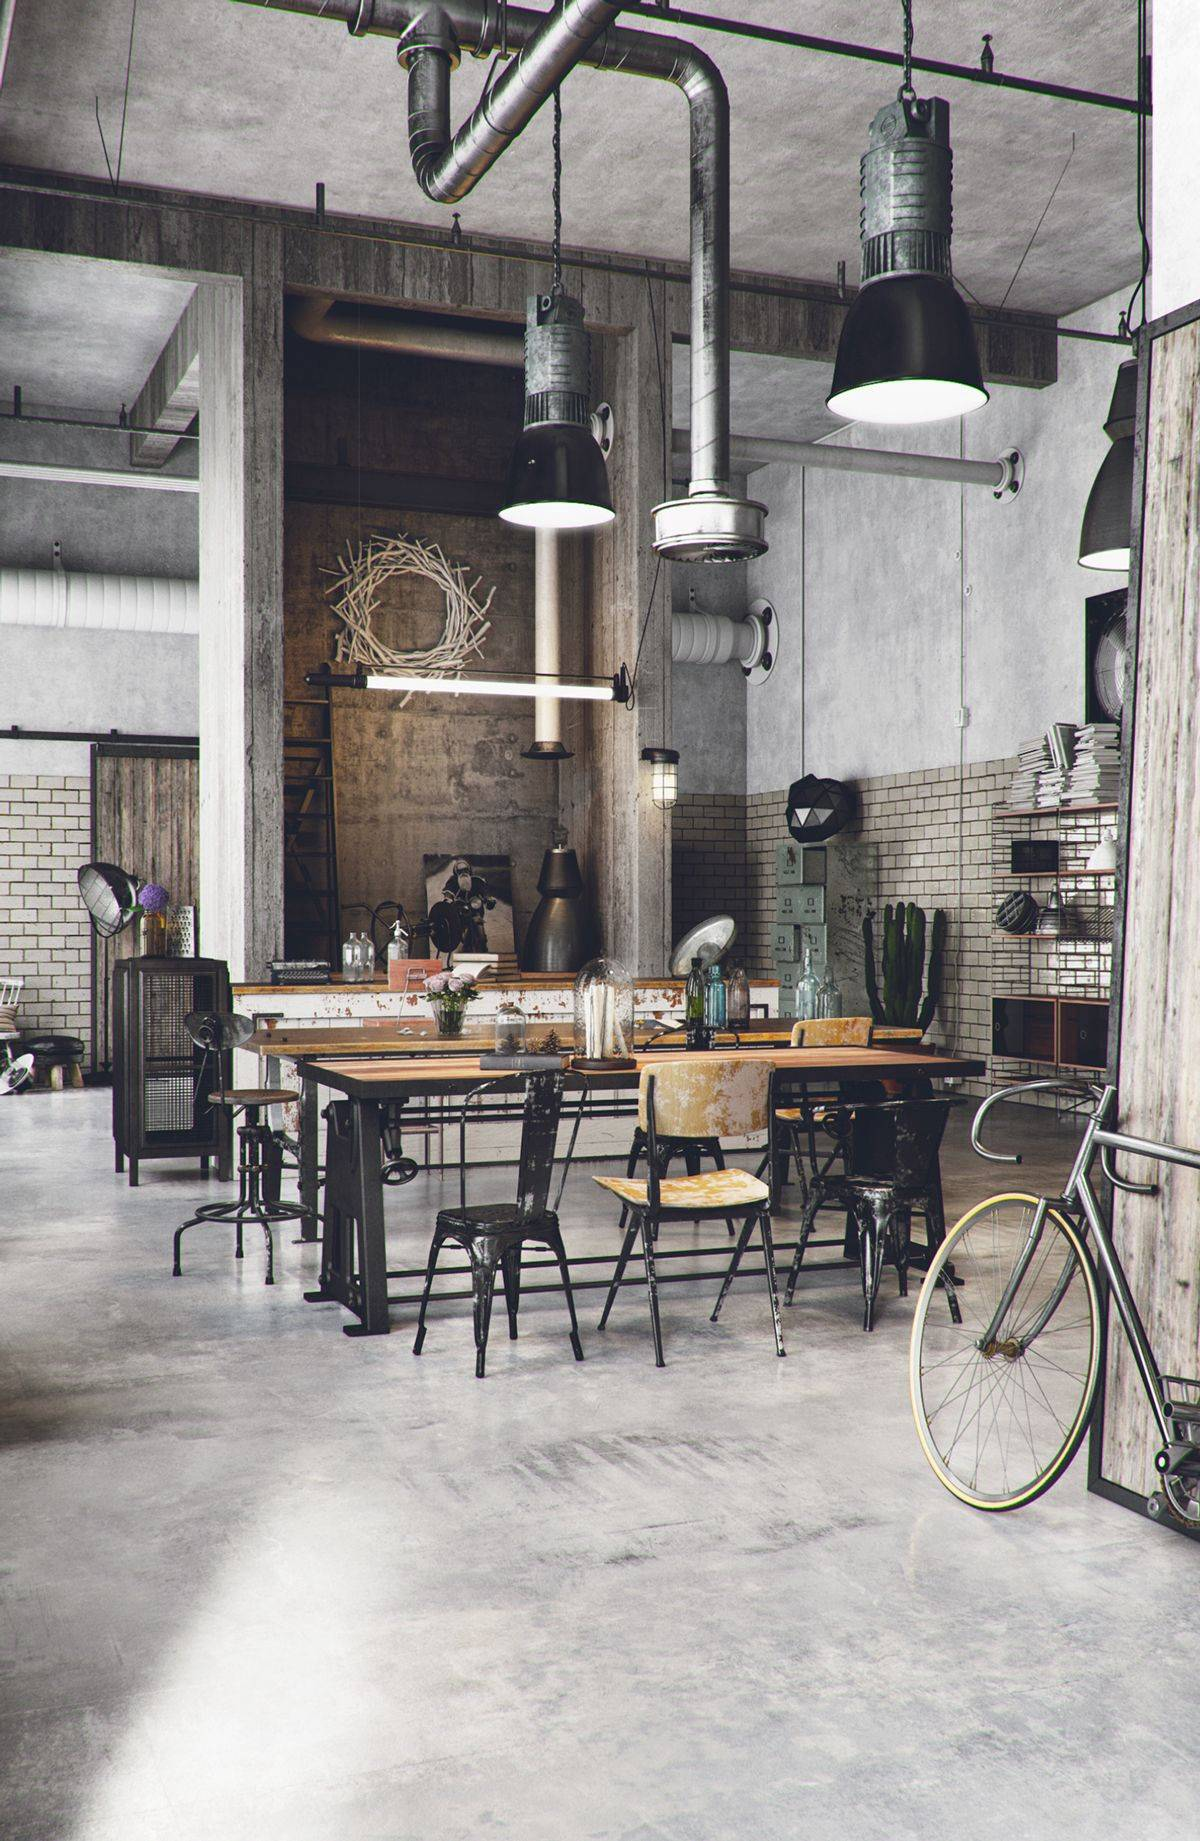 Great industrial kitchen decor with bold and brick walls and big dining space